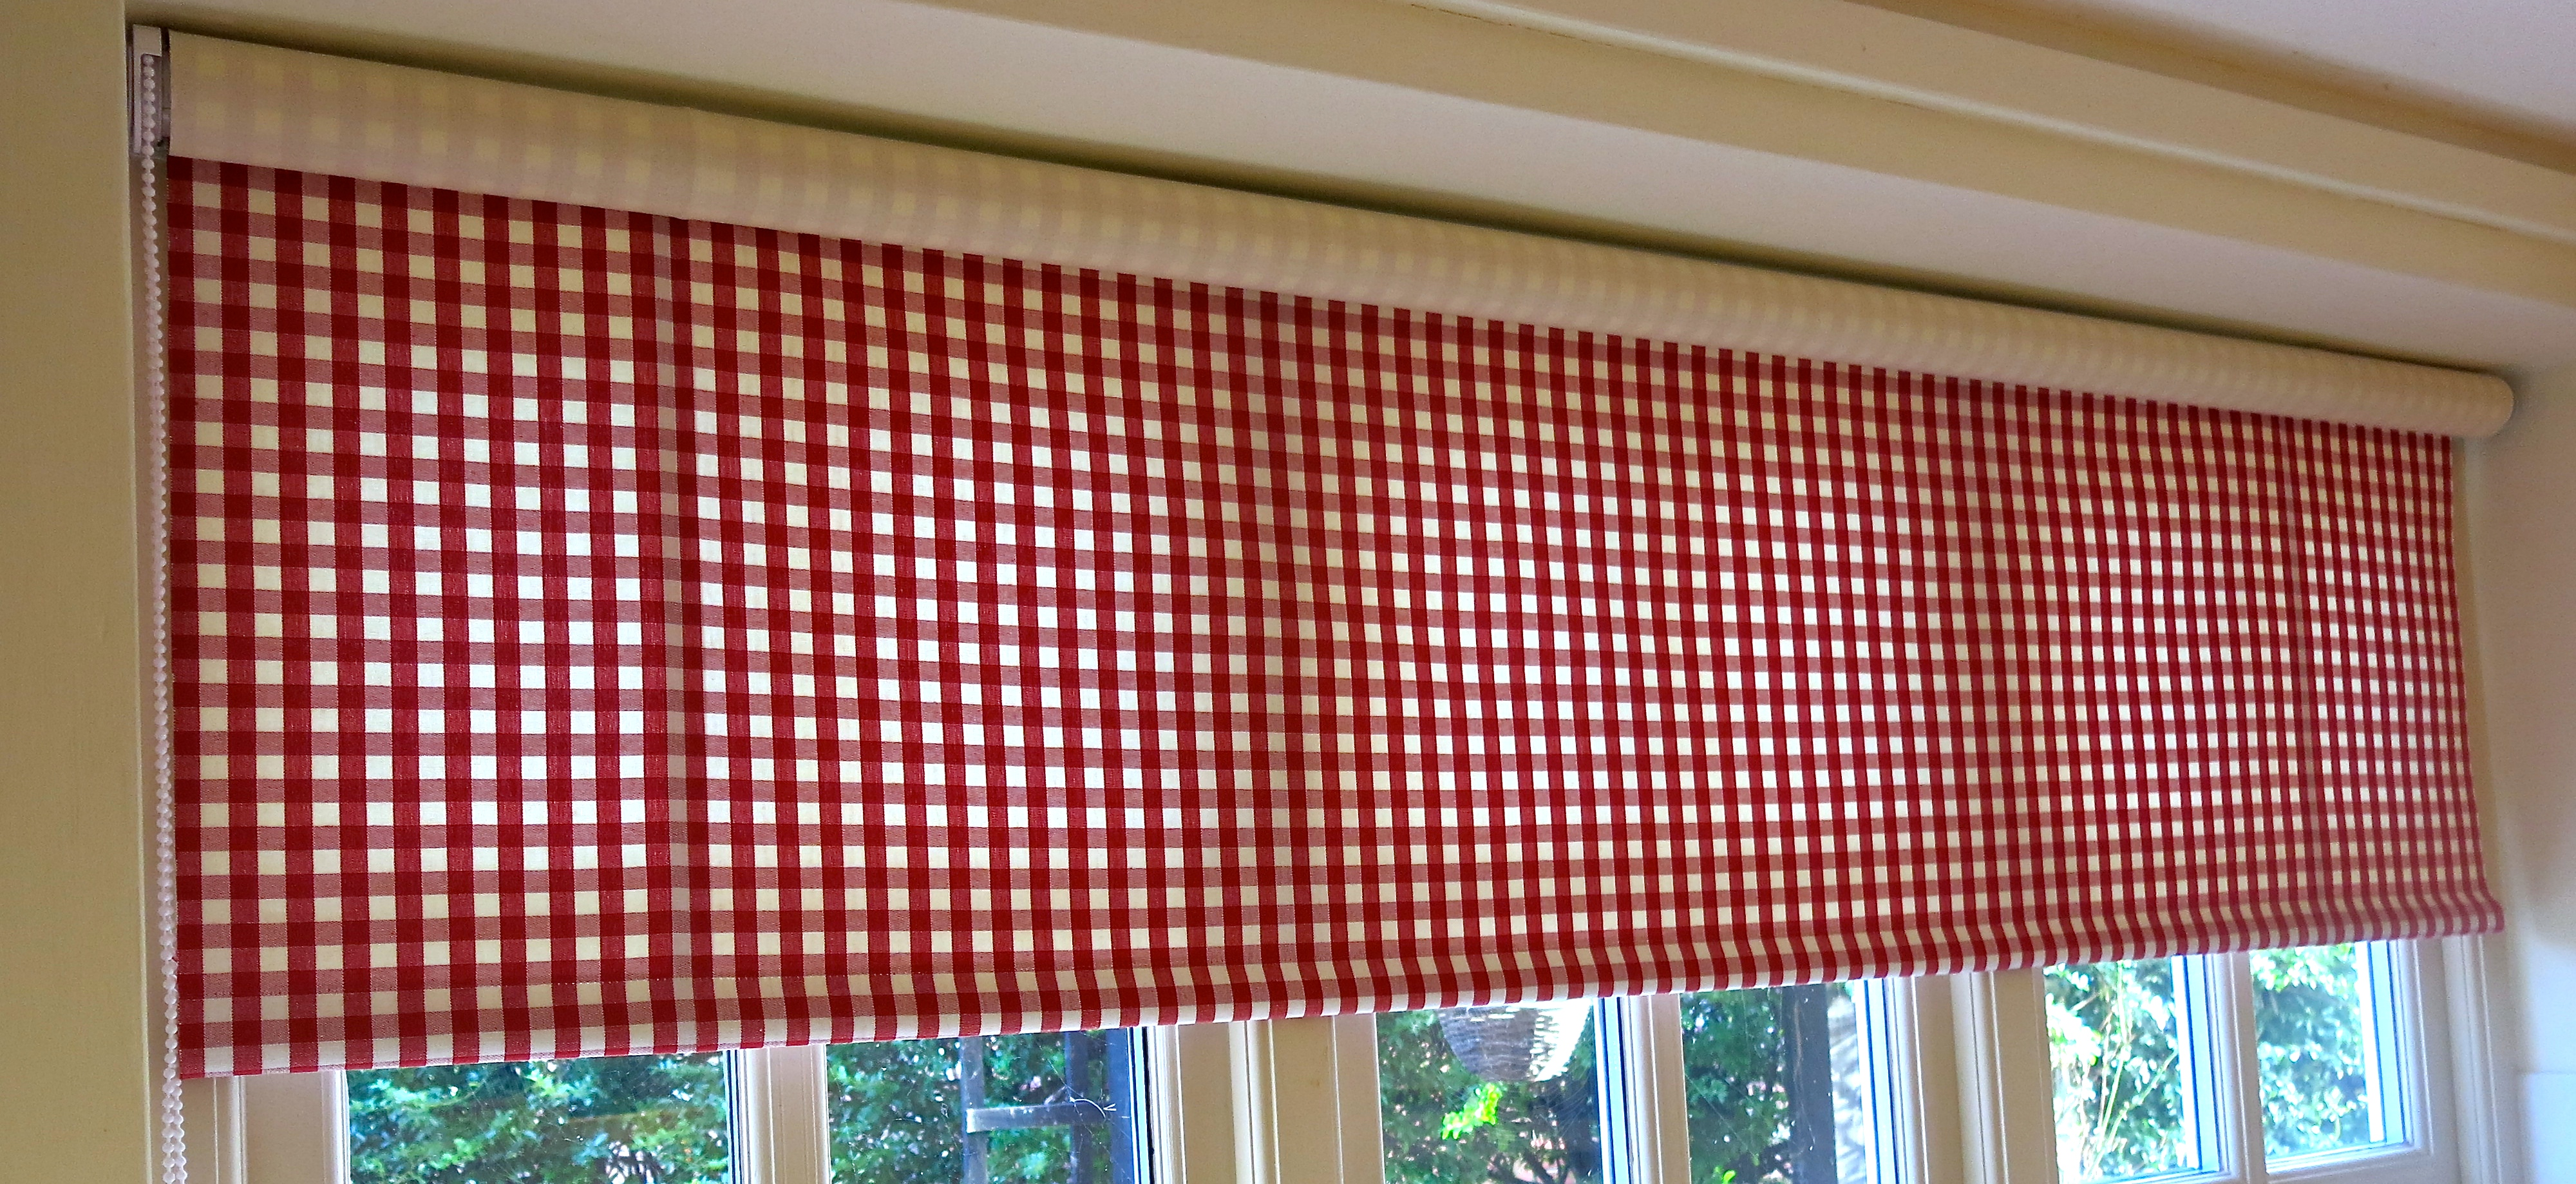 time on sew to diy heart tutorial cheap from nap how make mini roman blinds with i inexpensive shades no